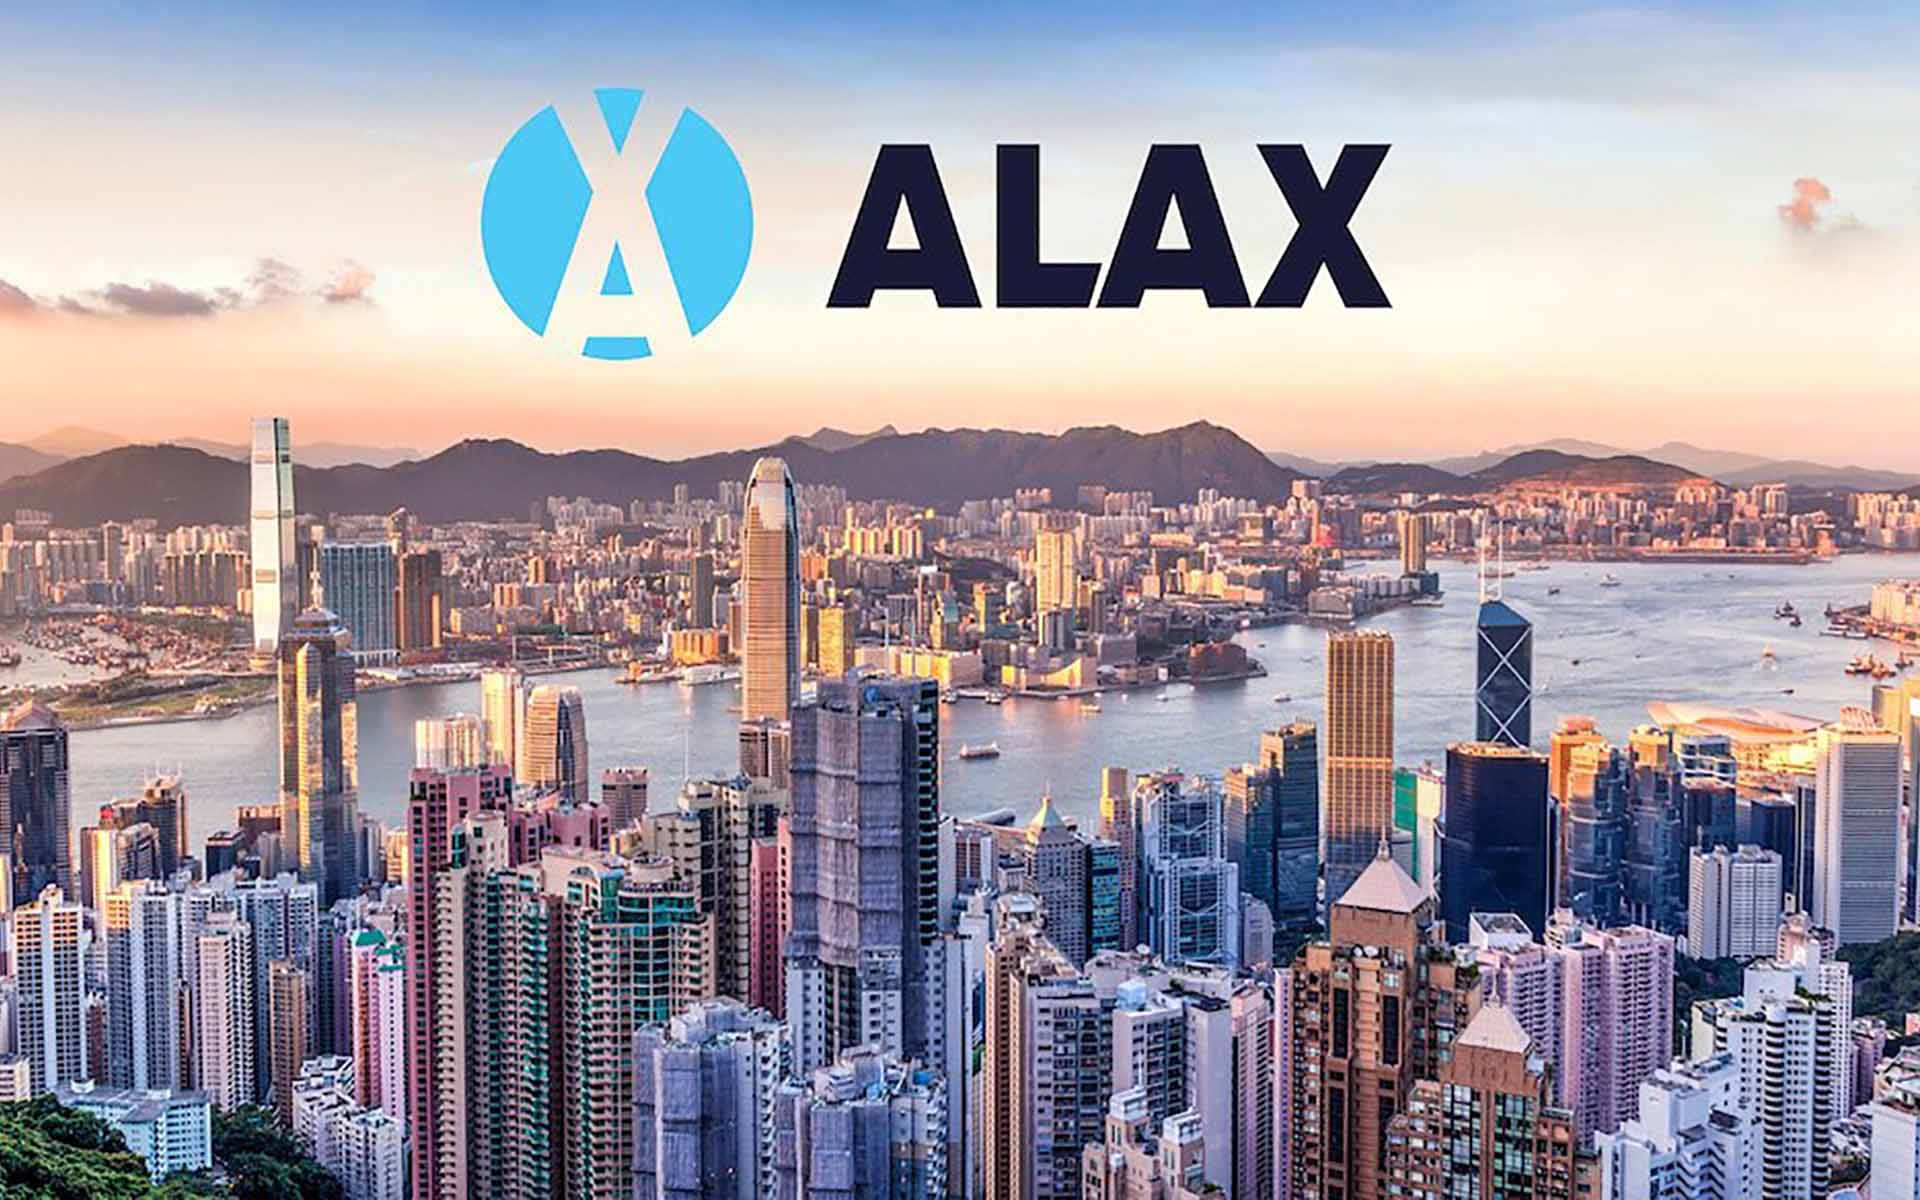 ALAX, the Blockchain-Based App Platform Allowing Access to Unbanked Consumers, Begins Token Generation Event